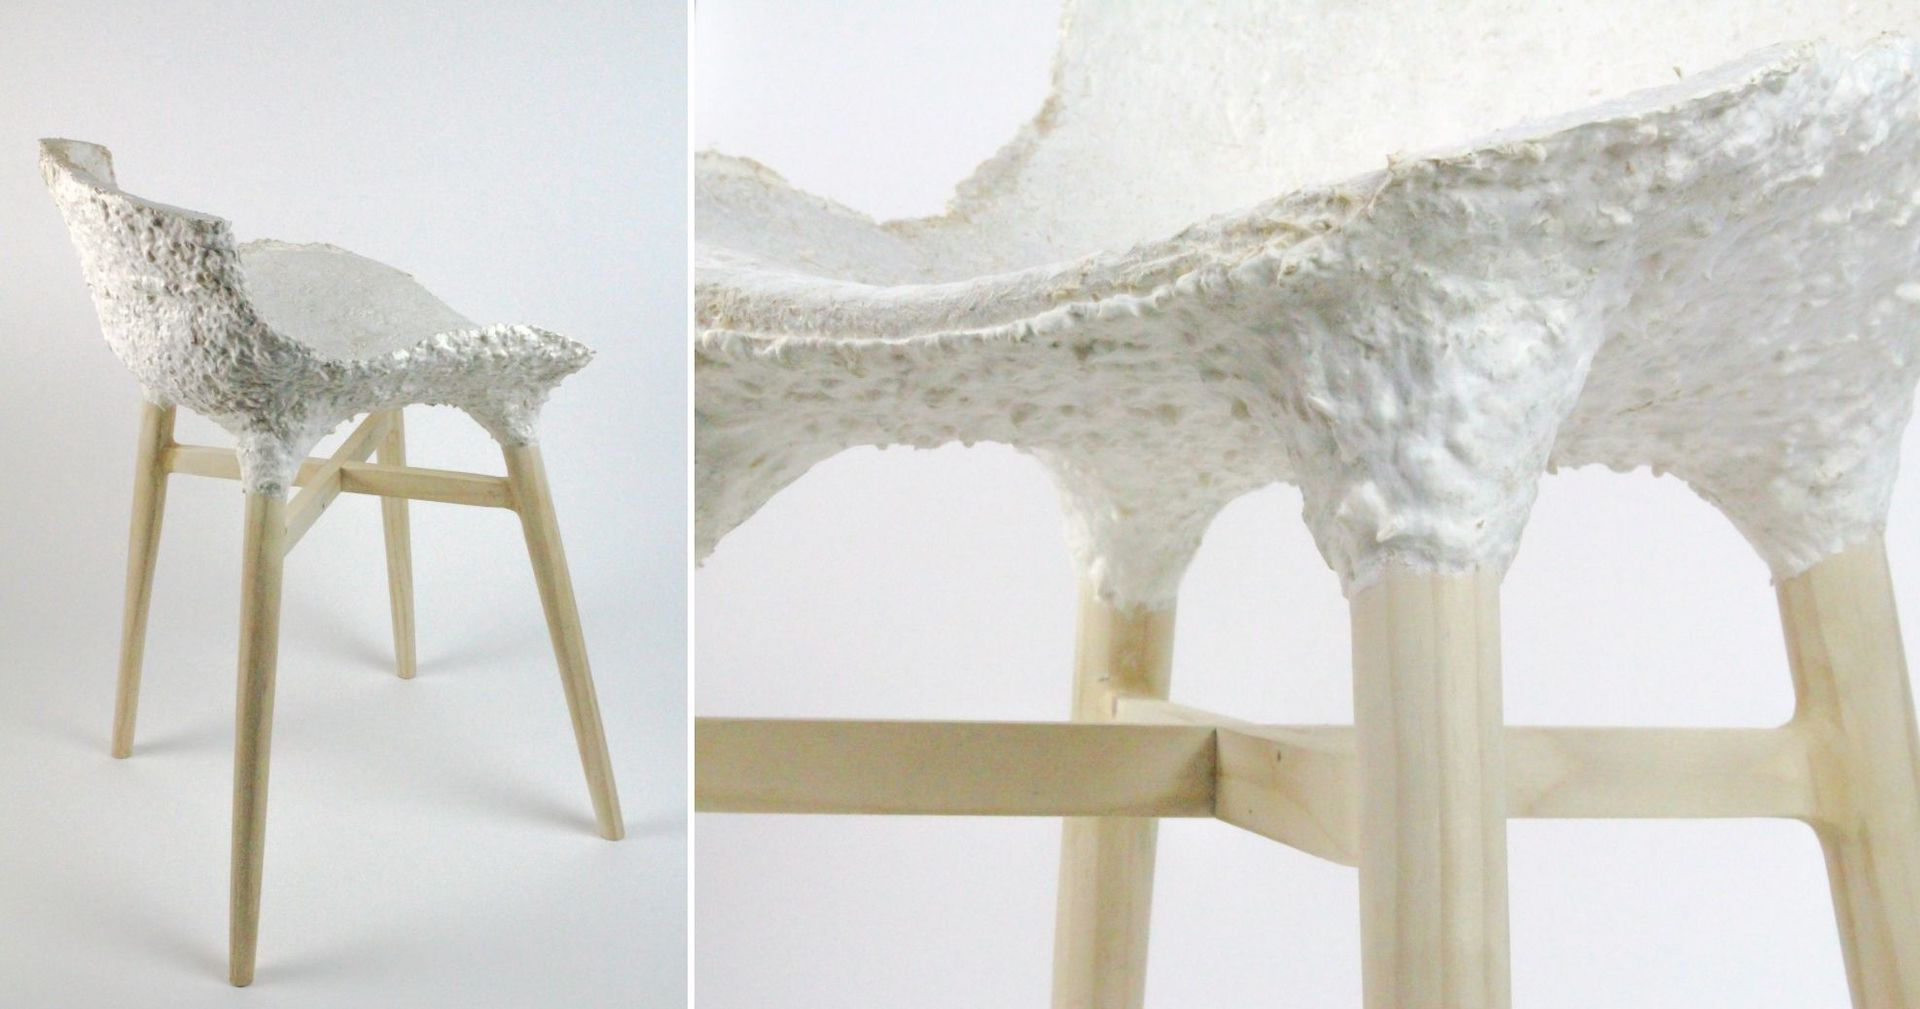 Seating created from Mycelia at Officina Corposcoli's Growing Lab. Photos © Officina Corpuscoli and Maurizio Montalti